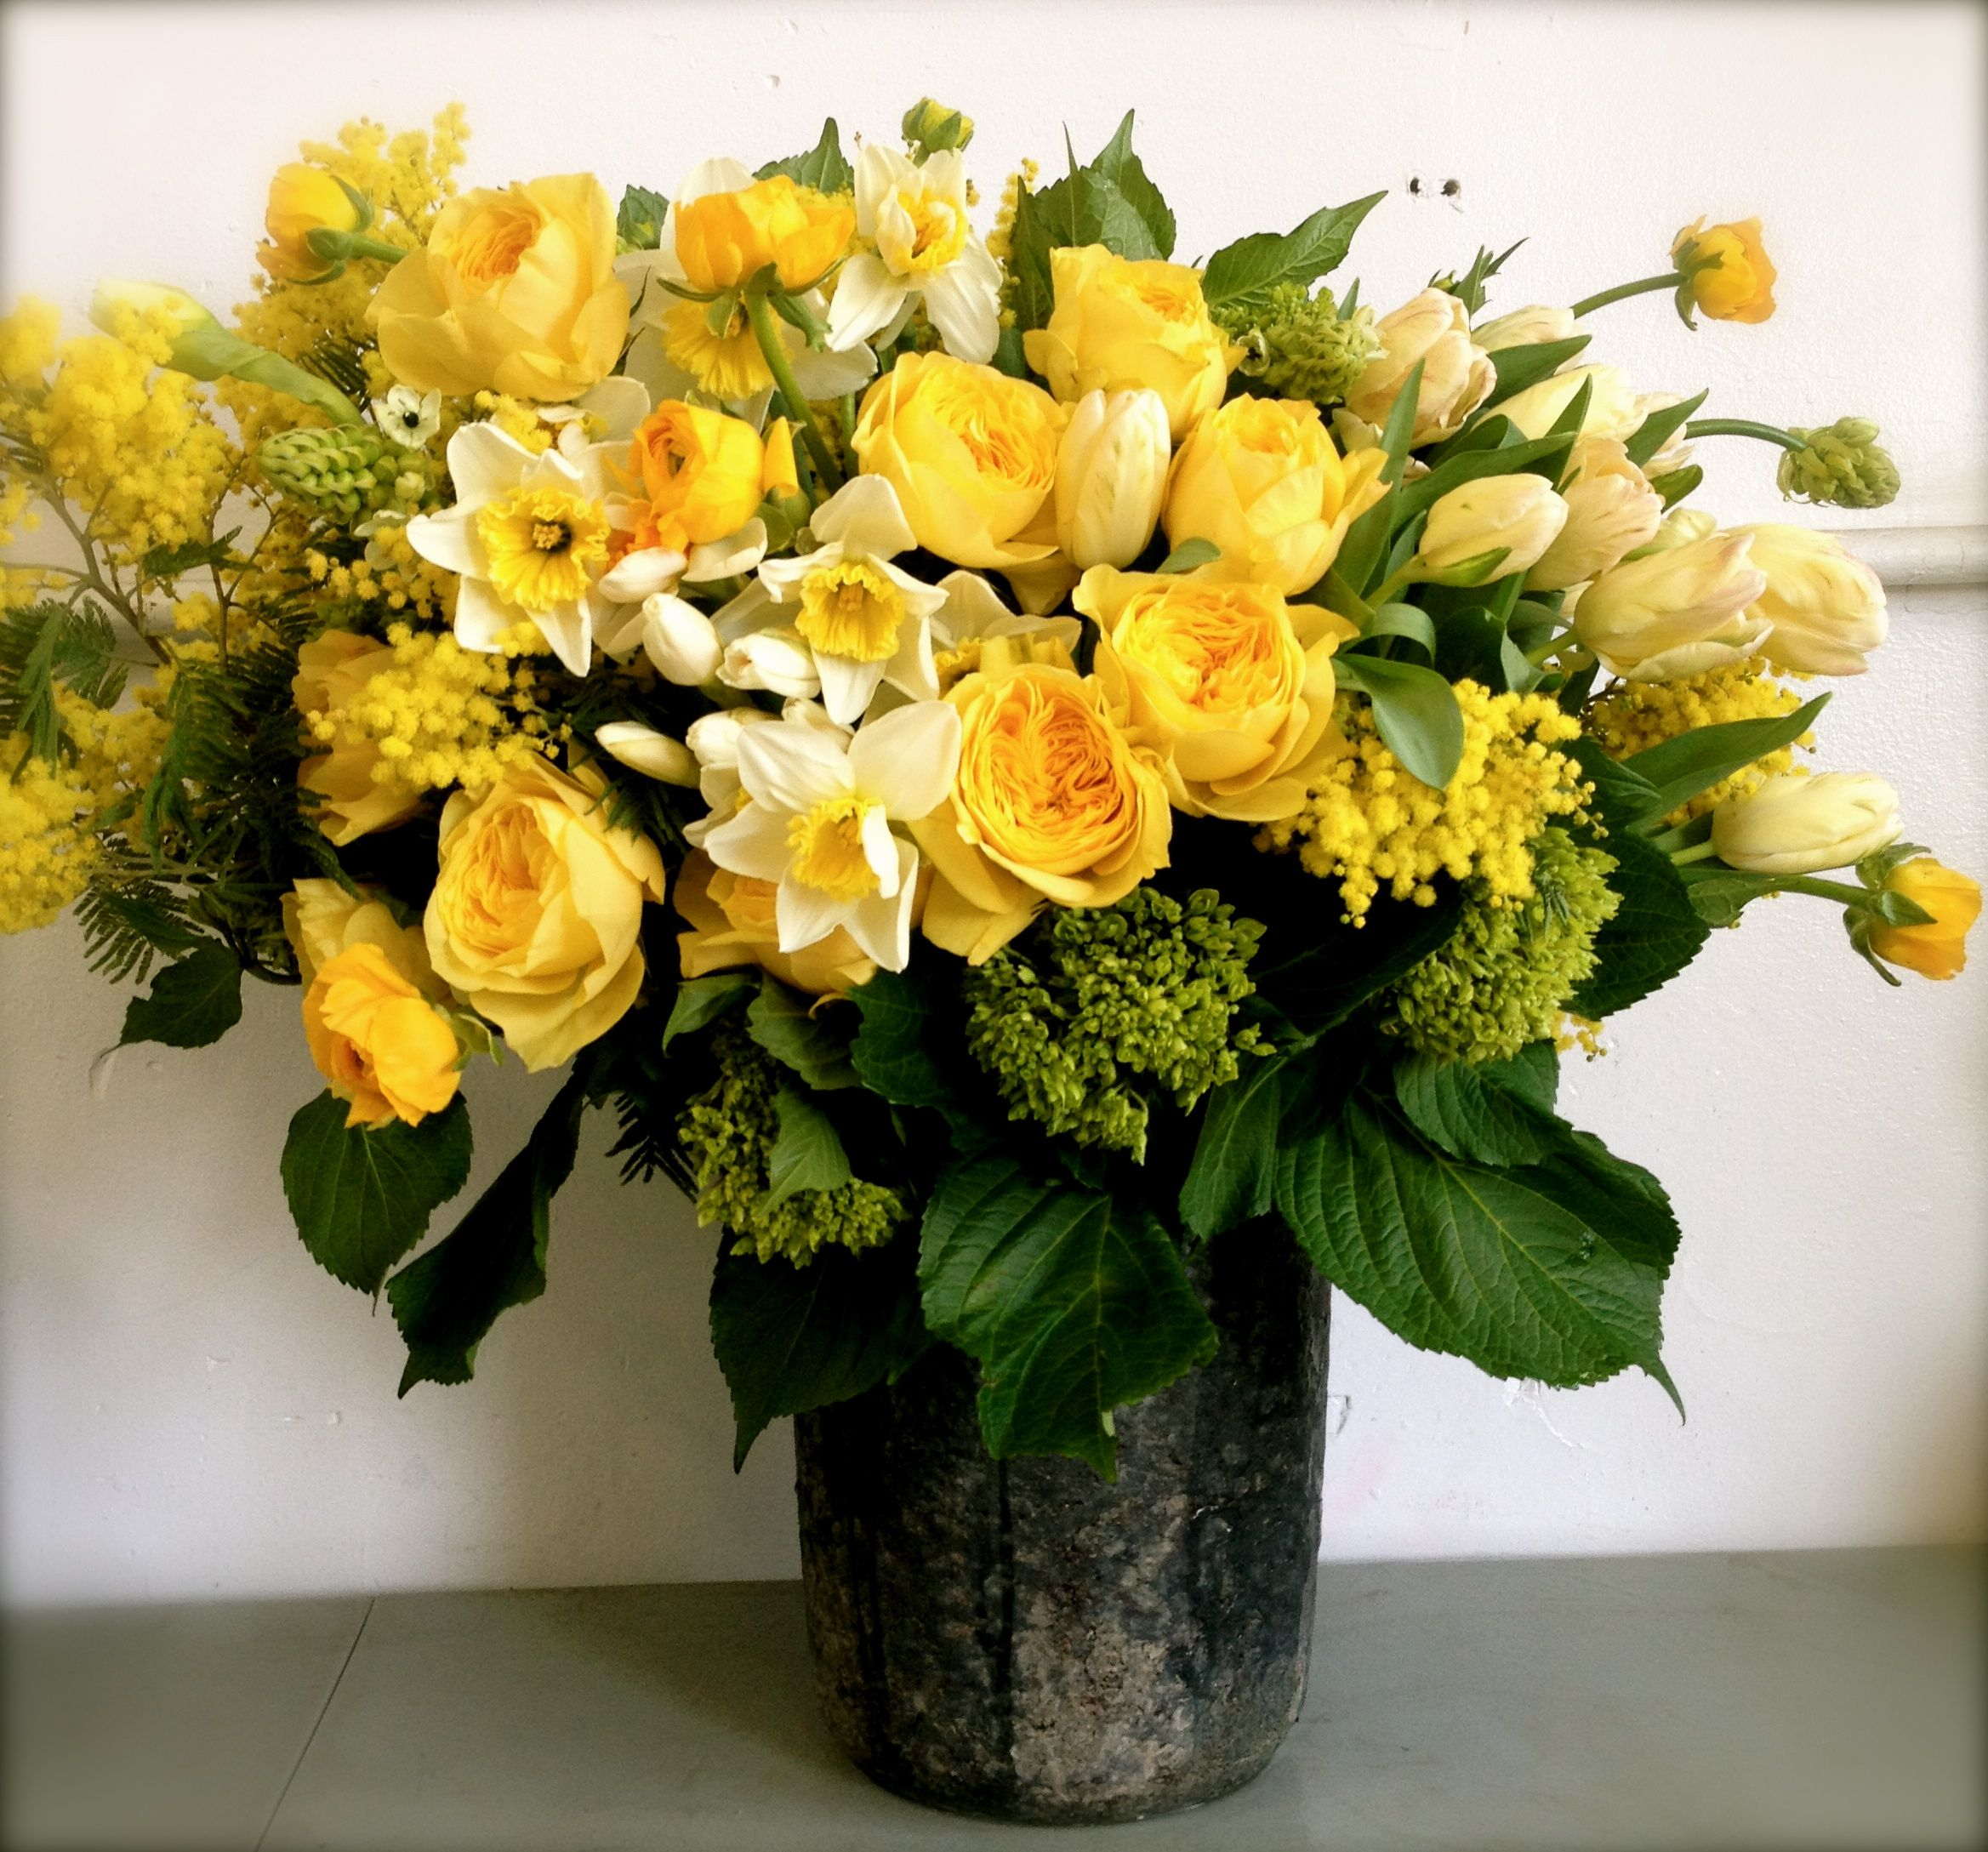 Arrangement by Botany including garden roses hydrangea